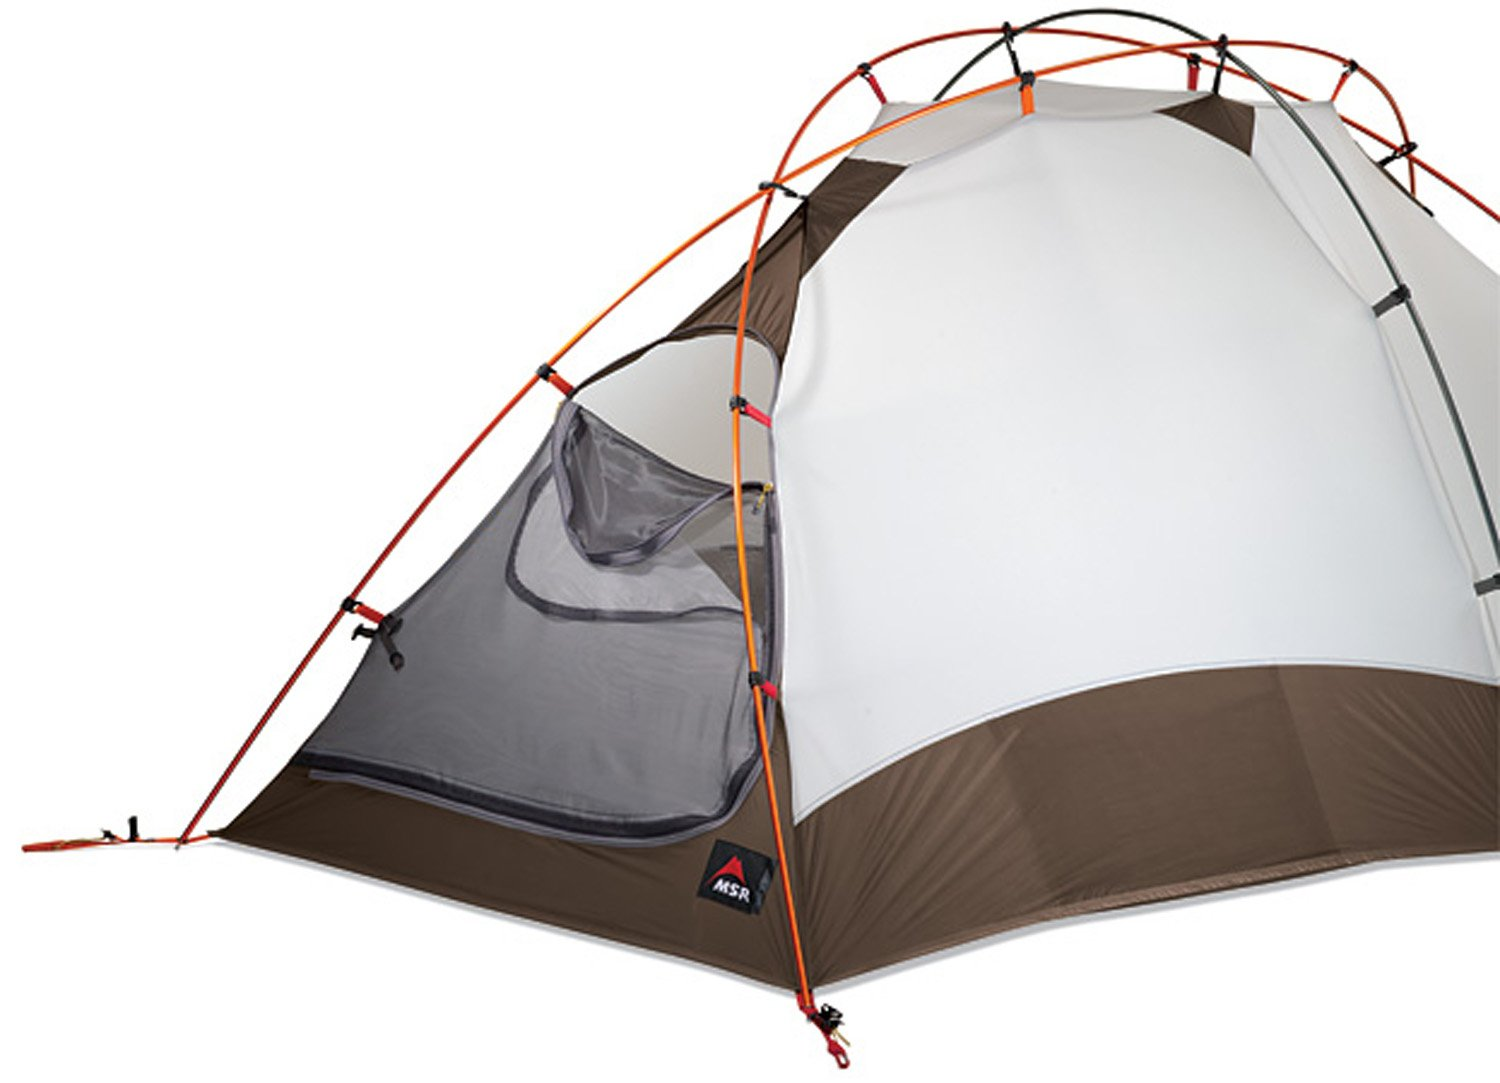 sc 1 st  Amazon.com & Amazon.com : MSR Fury Tent : Backpacking Tents : Sports u0026 Outdoors